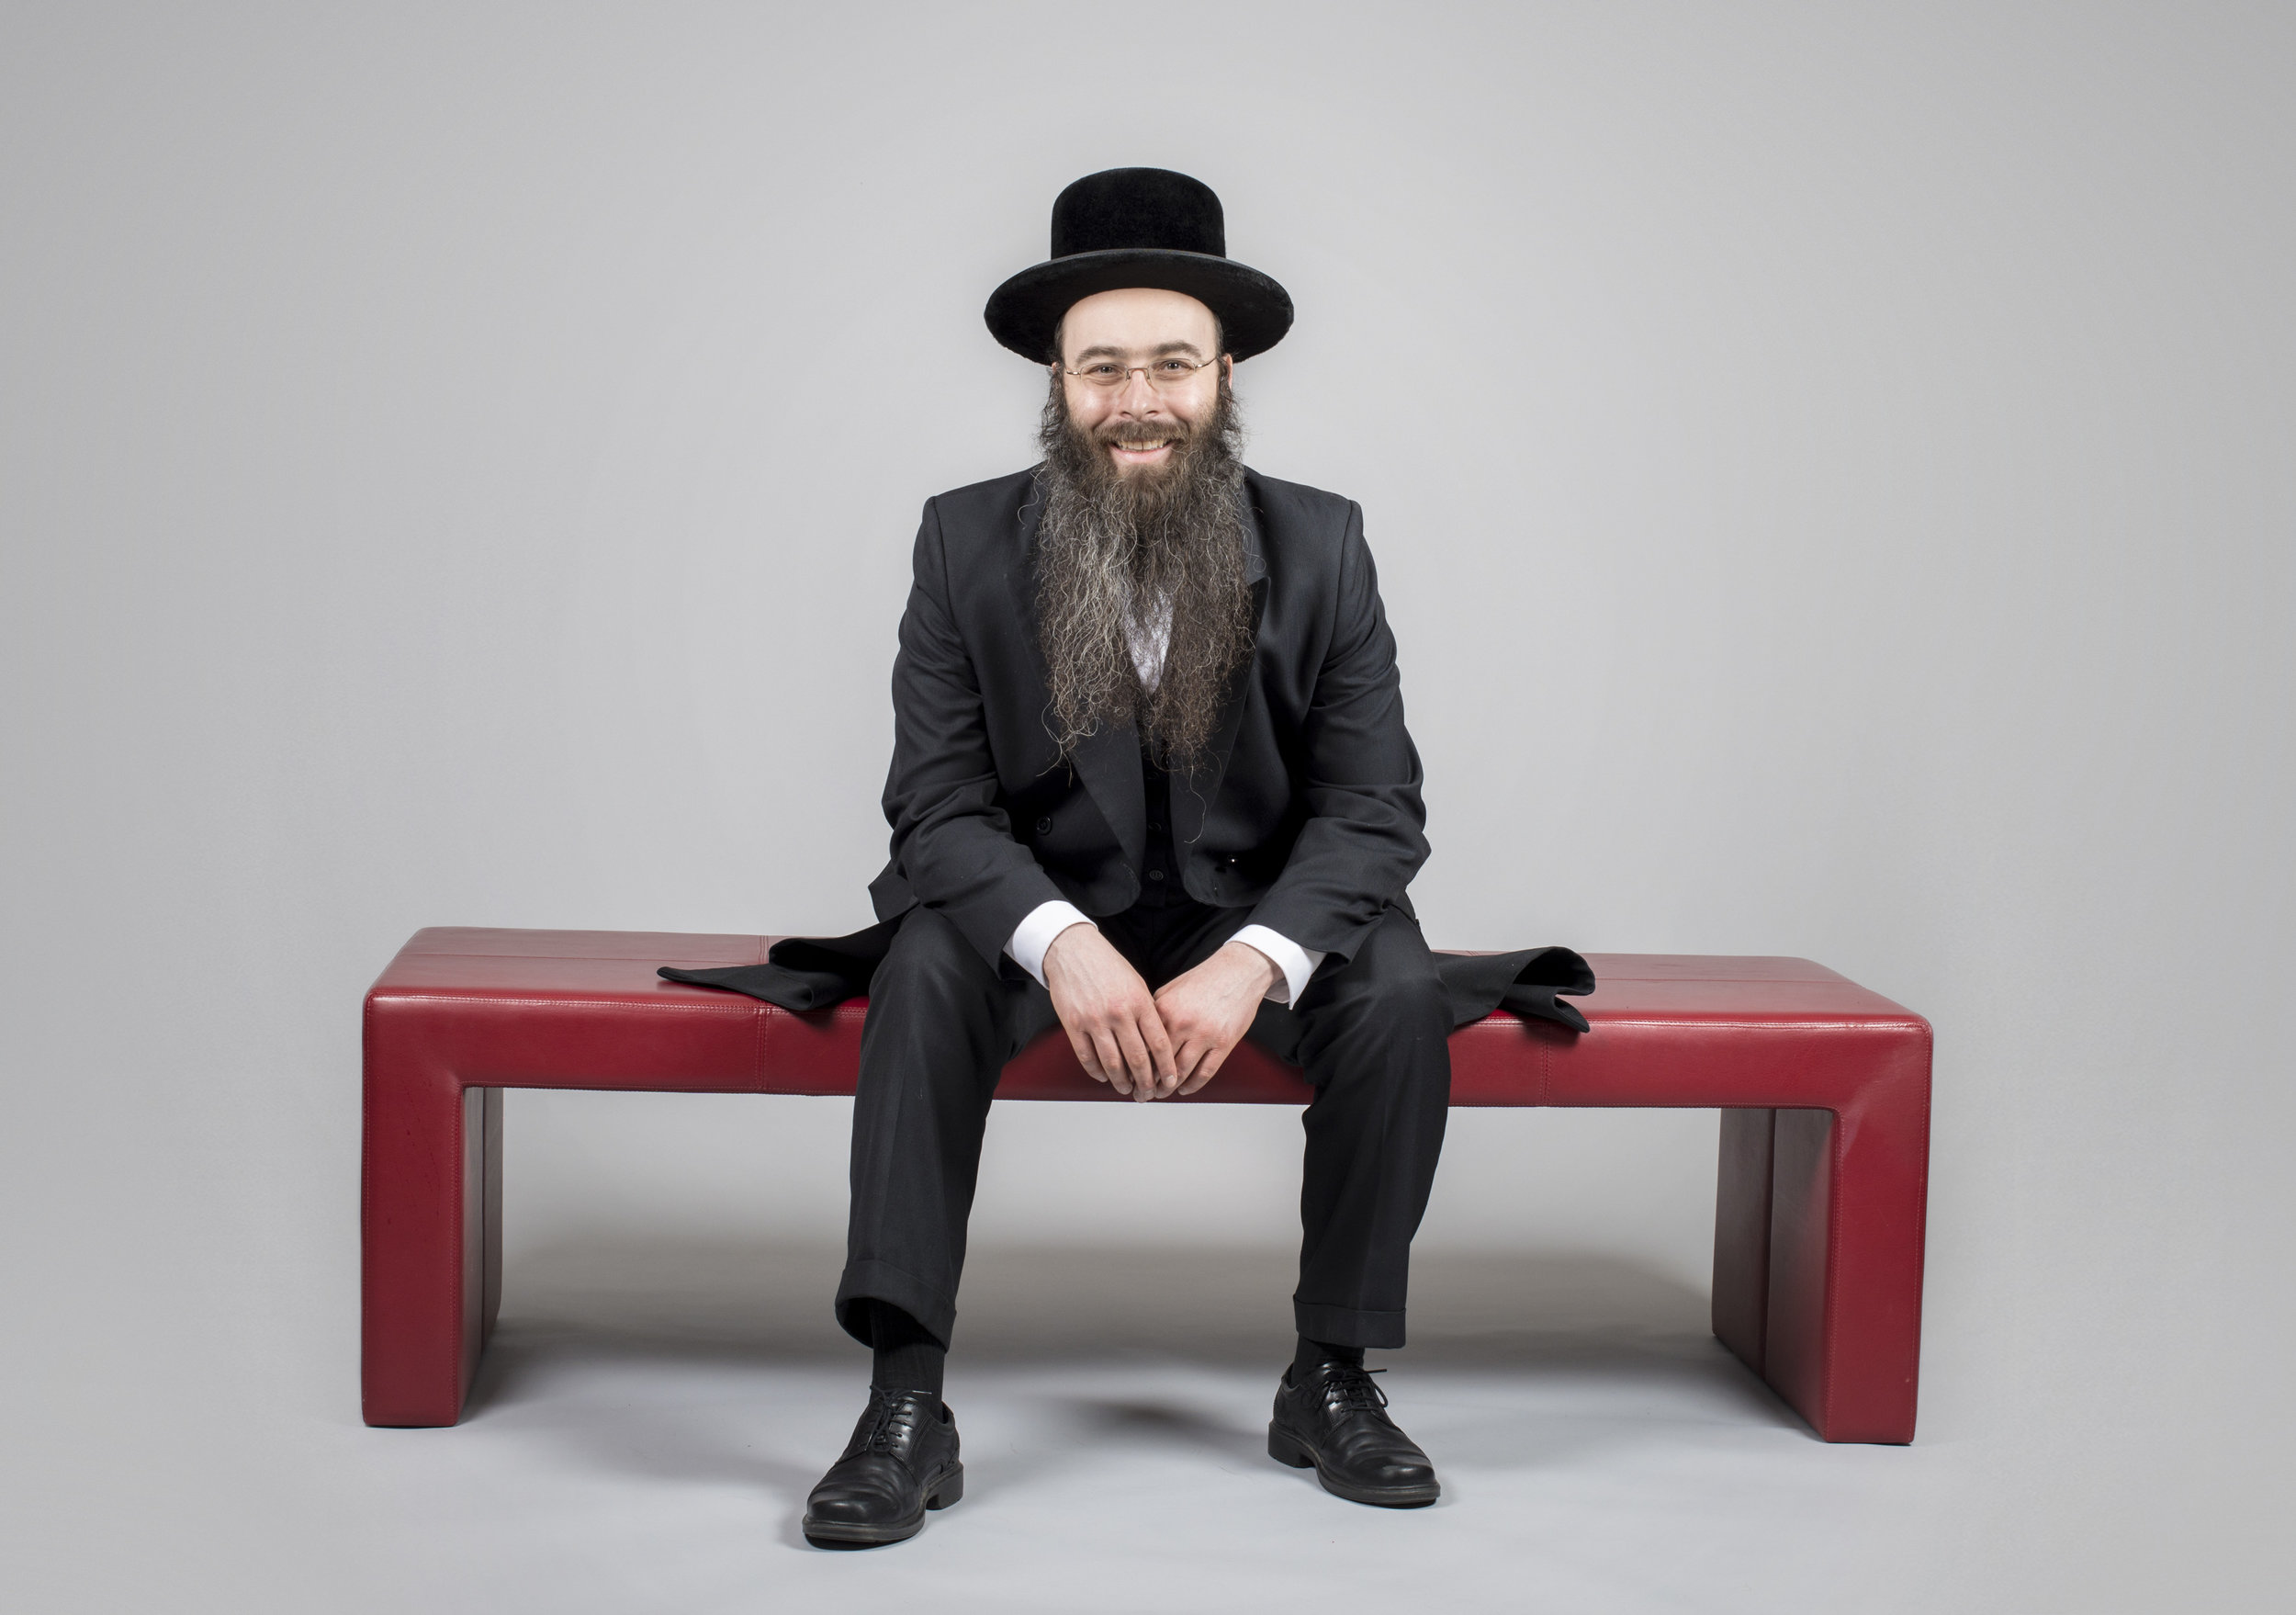 This is Avraham. He's hilarious. Smart and hilarious. And generous.